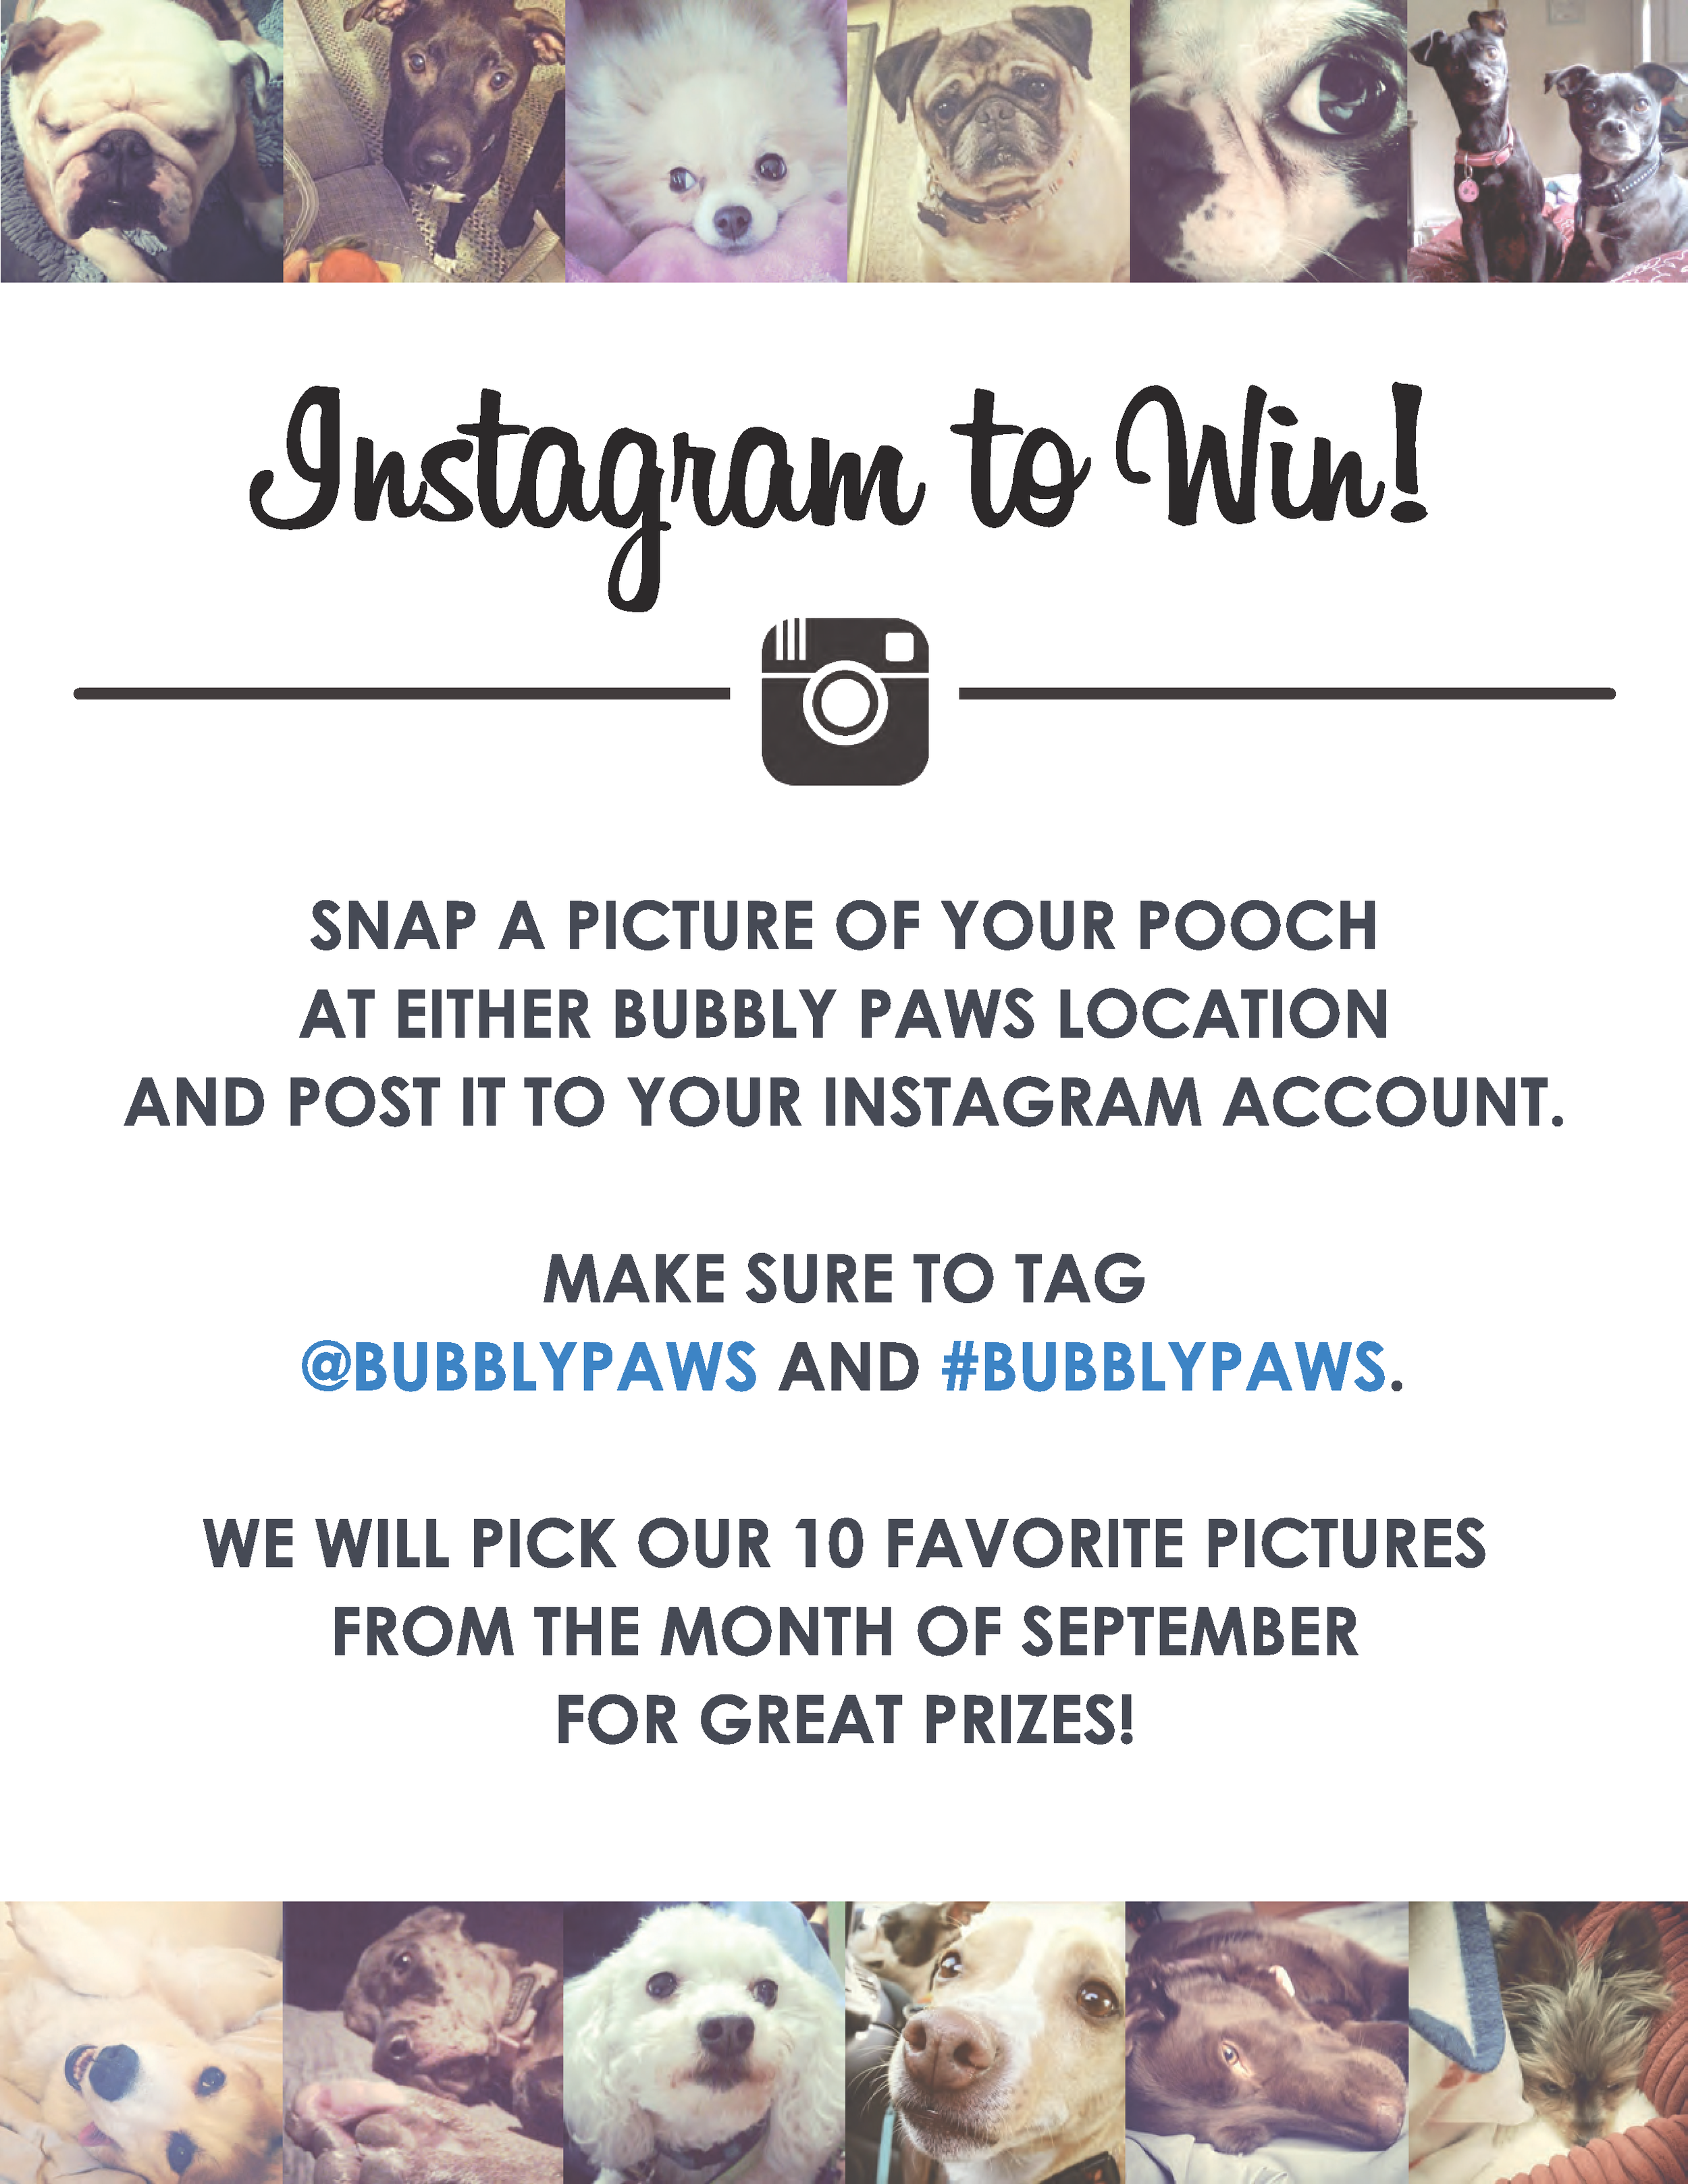 Bubbly Paws Dog Wash on Instagram